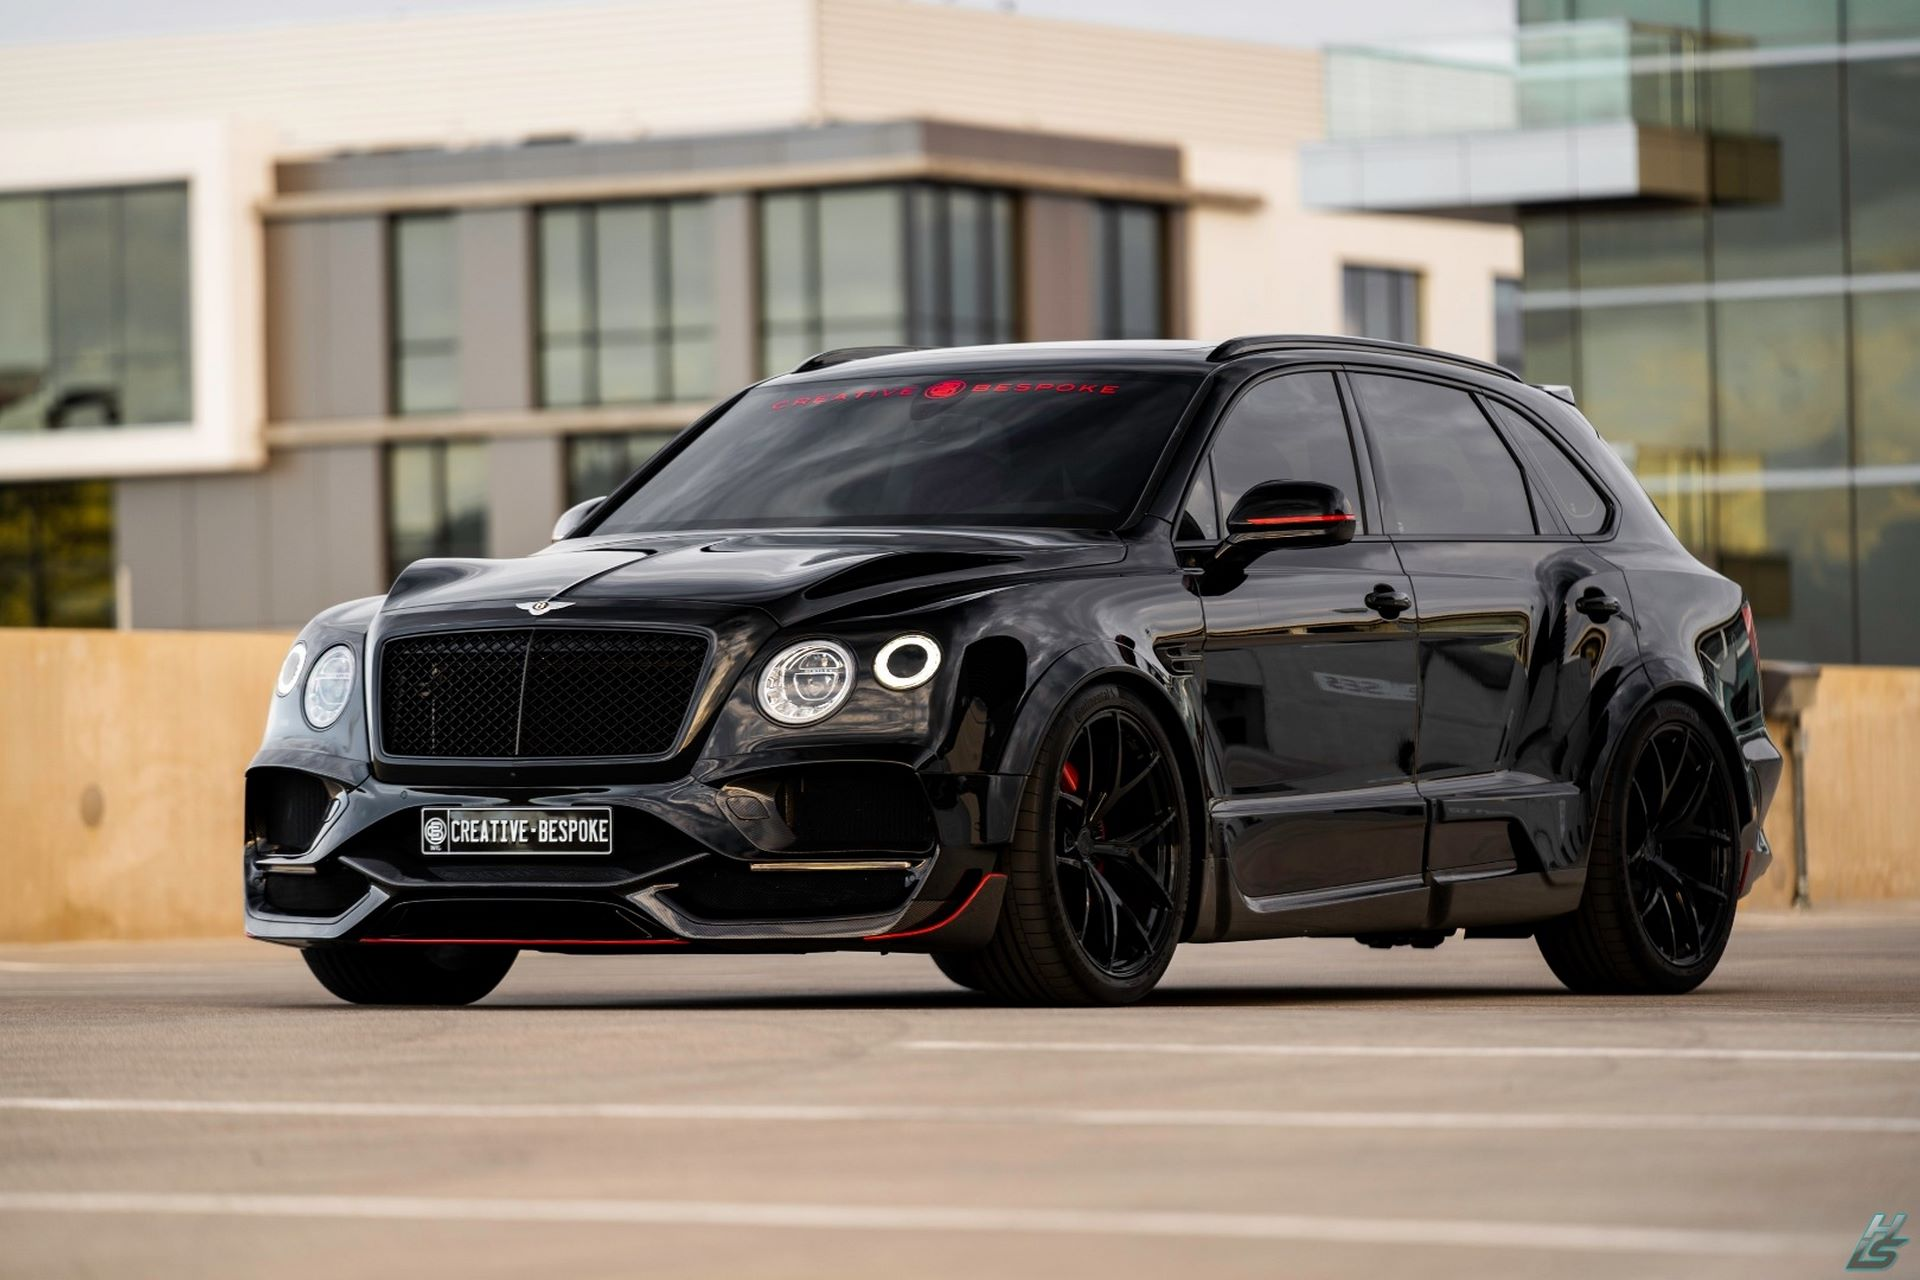 Bentley-Bentayga-by-Creative-Bespoke-4